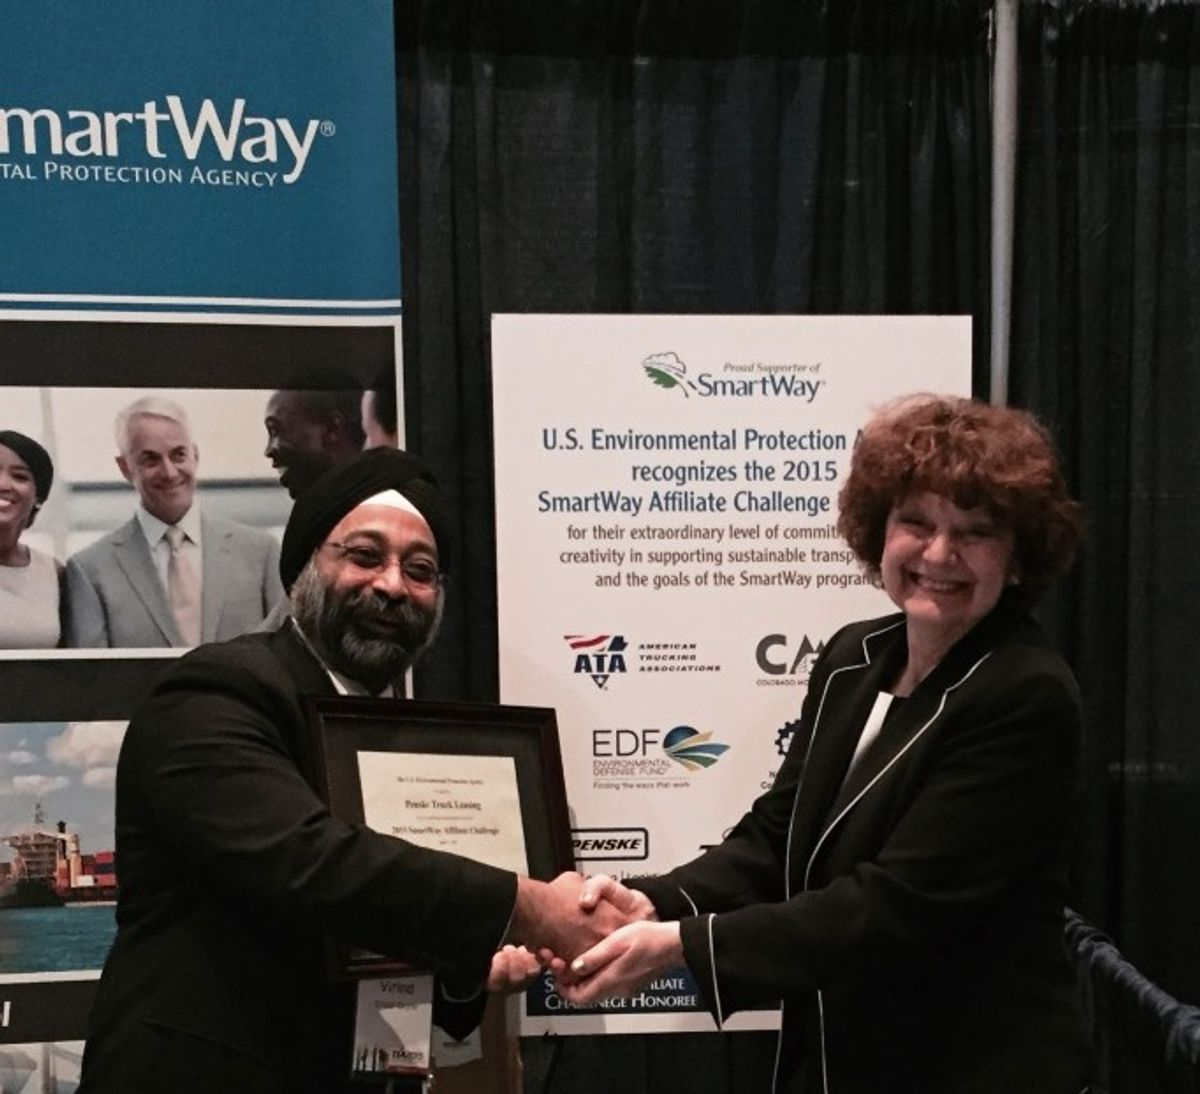 Penske Truck Leasing Winner of SmartWay Affiliate Challenge Award